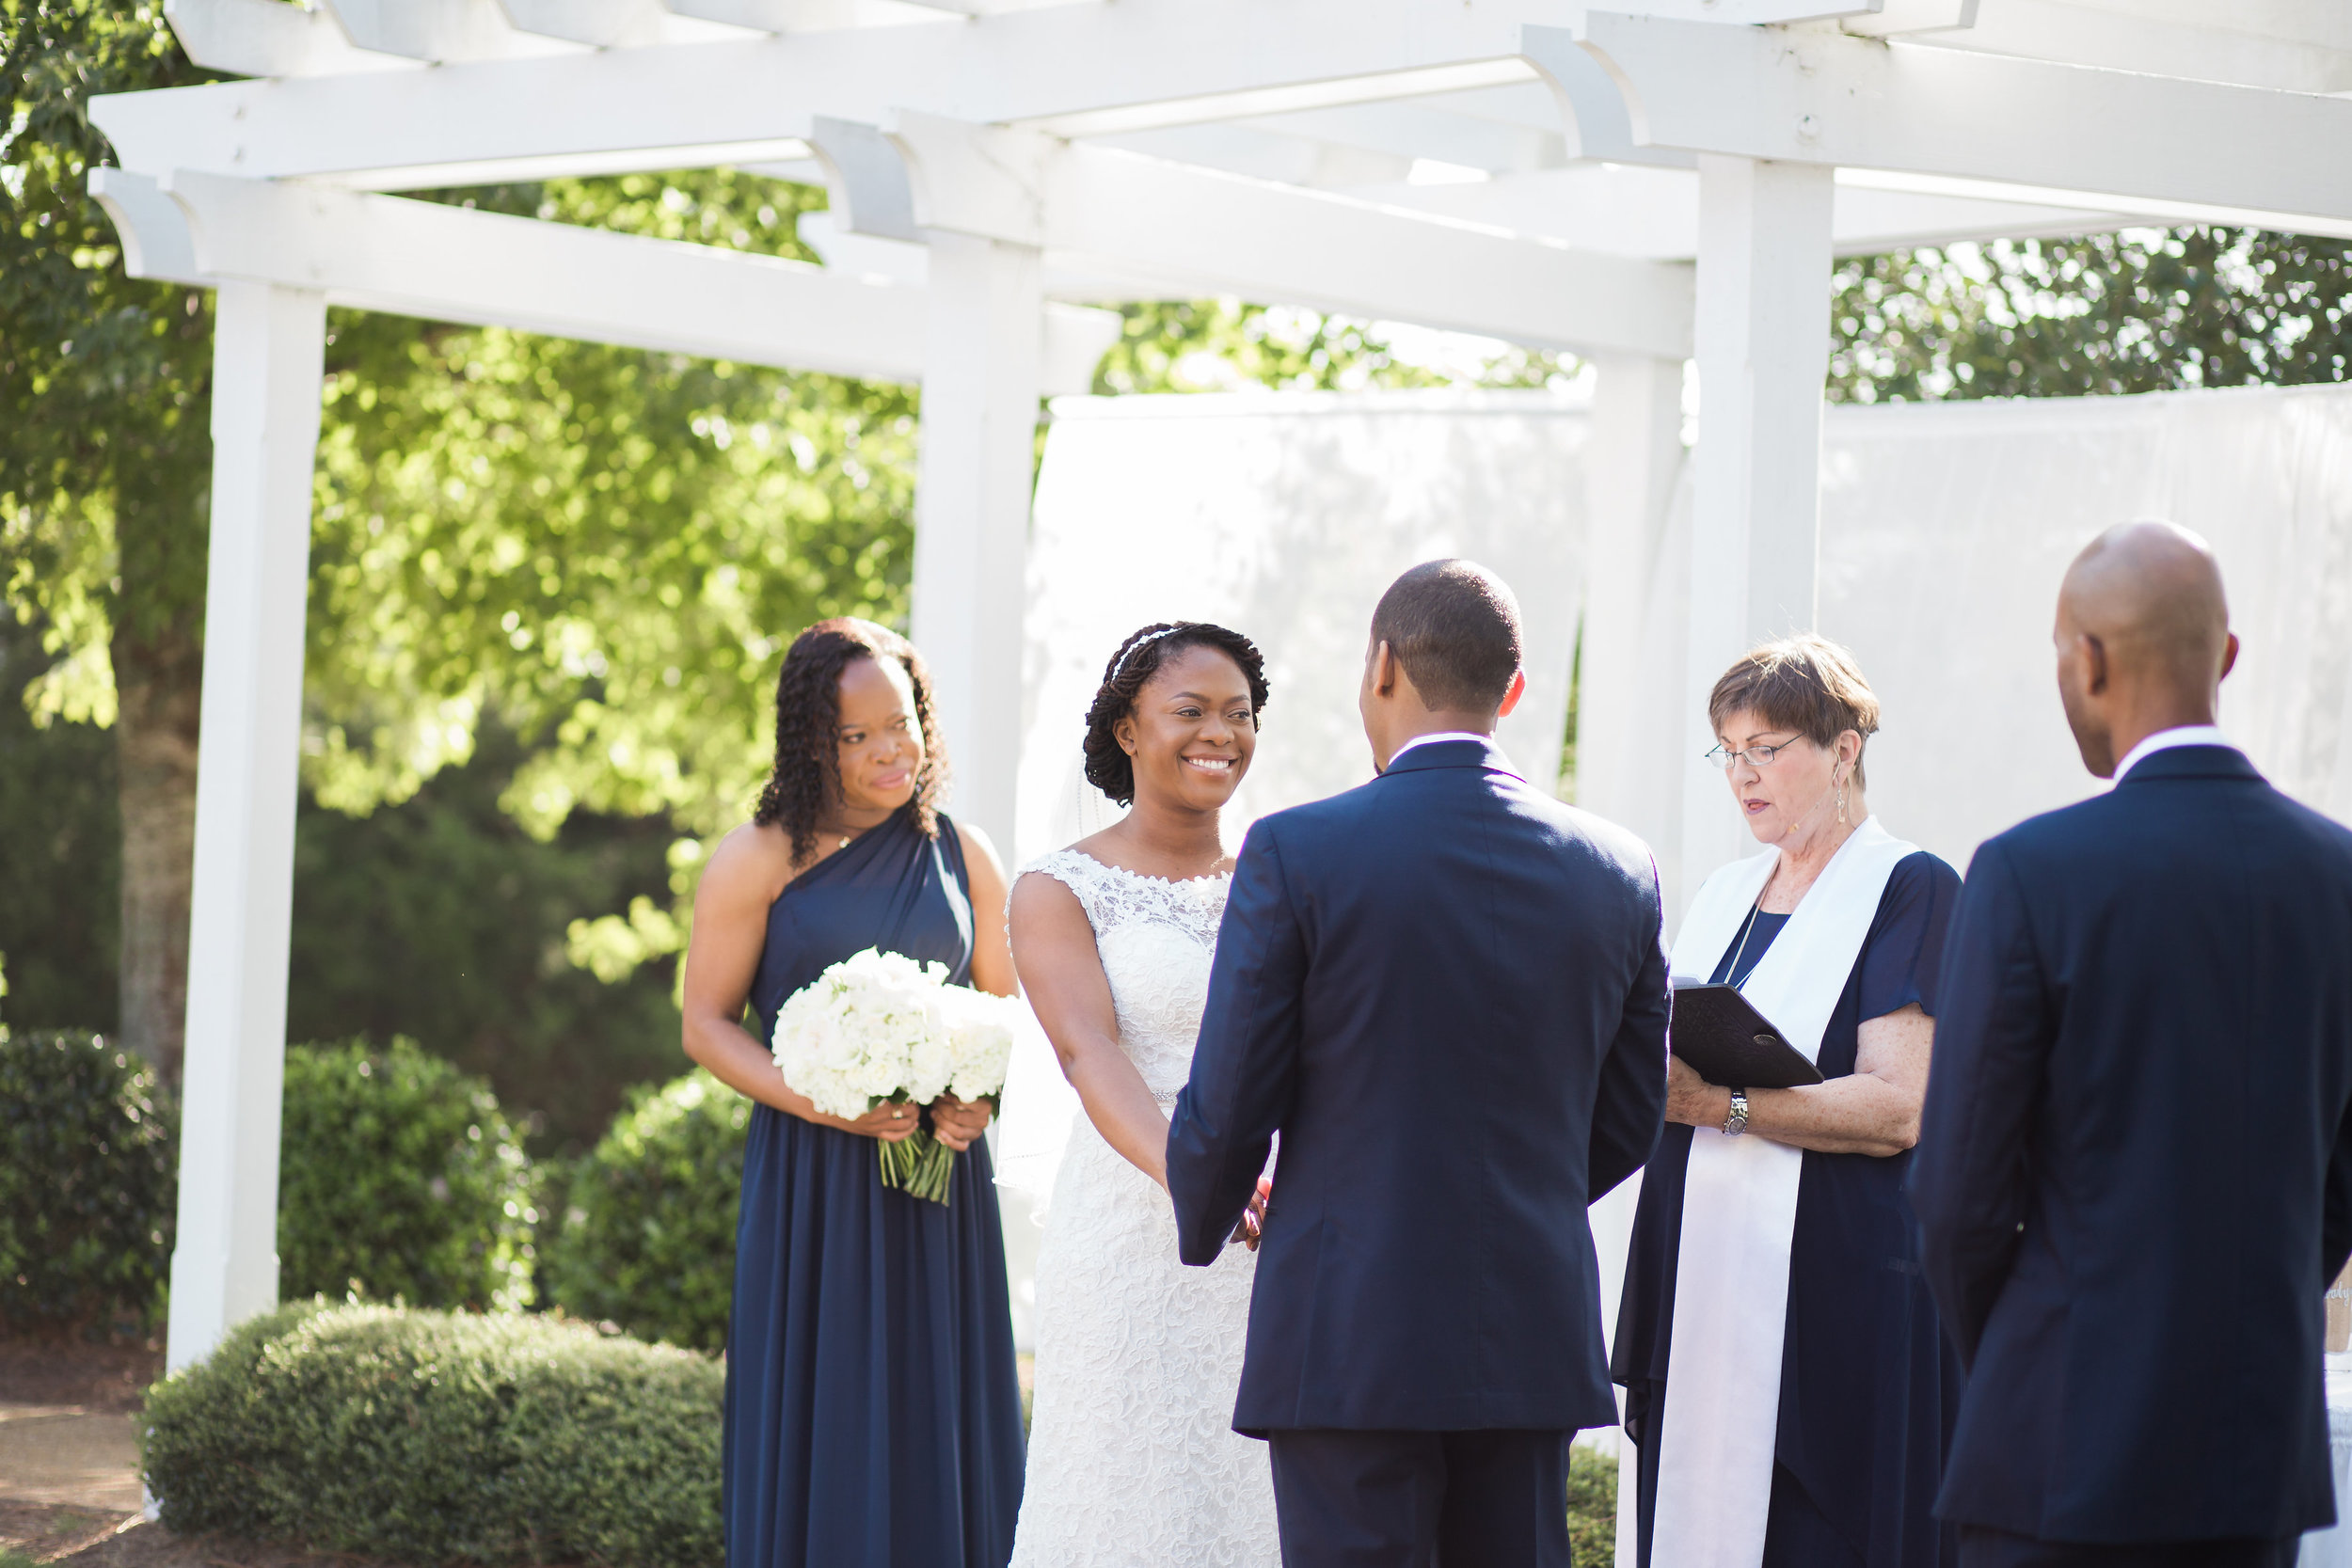 Brier Creek CC Wedding in the Jasmine Courtyard. Photos compliments of Story and Rhythm